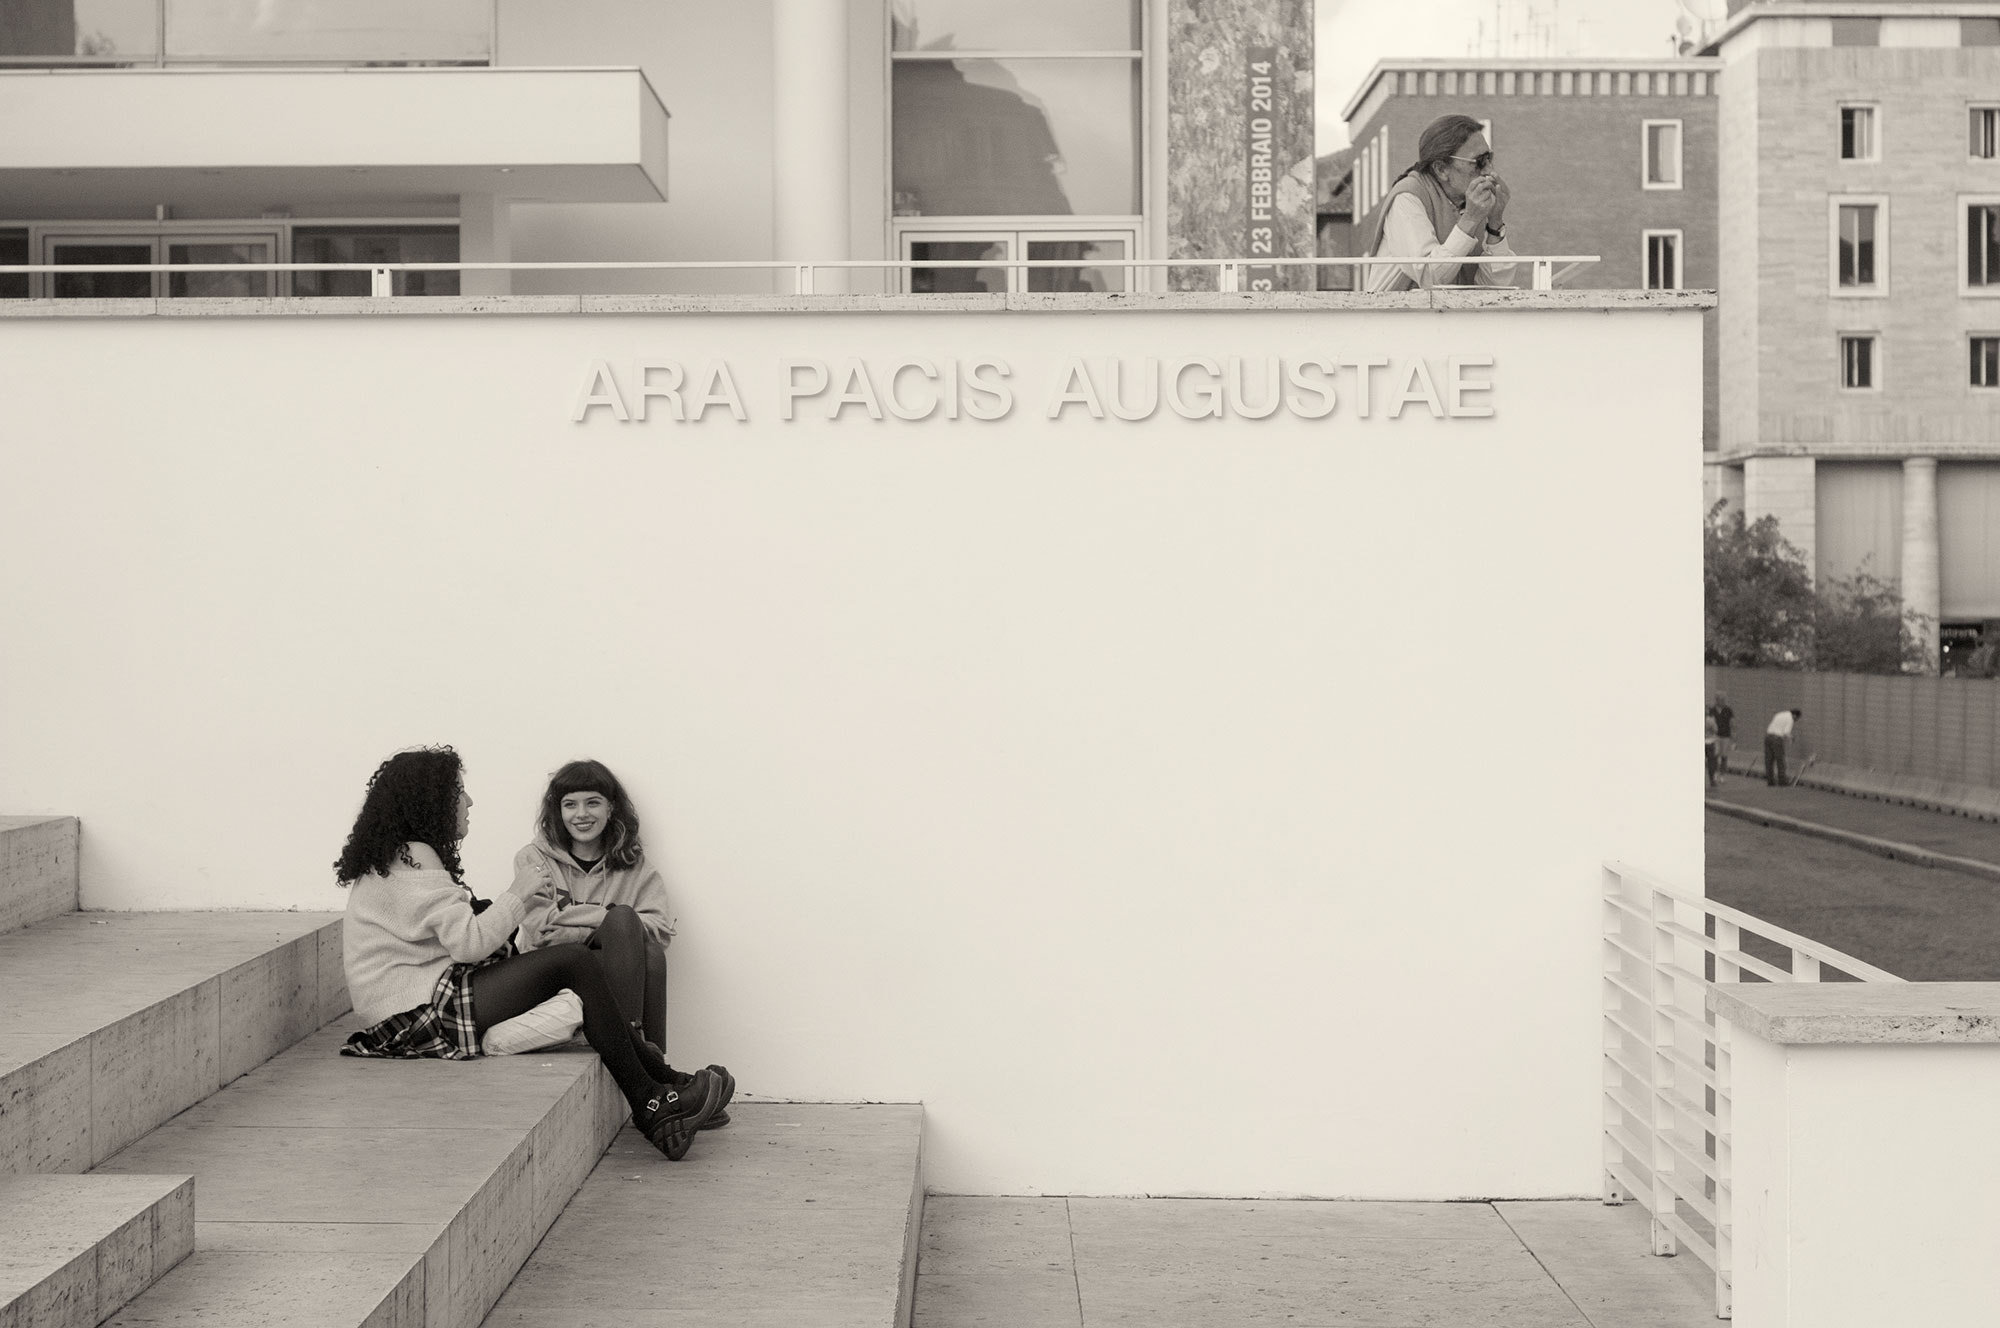 Photograph Ara Pacis Augustae by Marcello Ceraulo on 500px